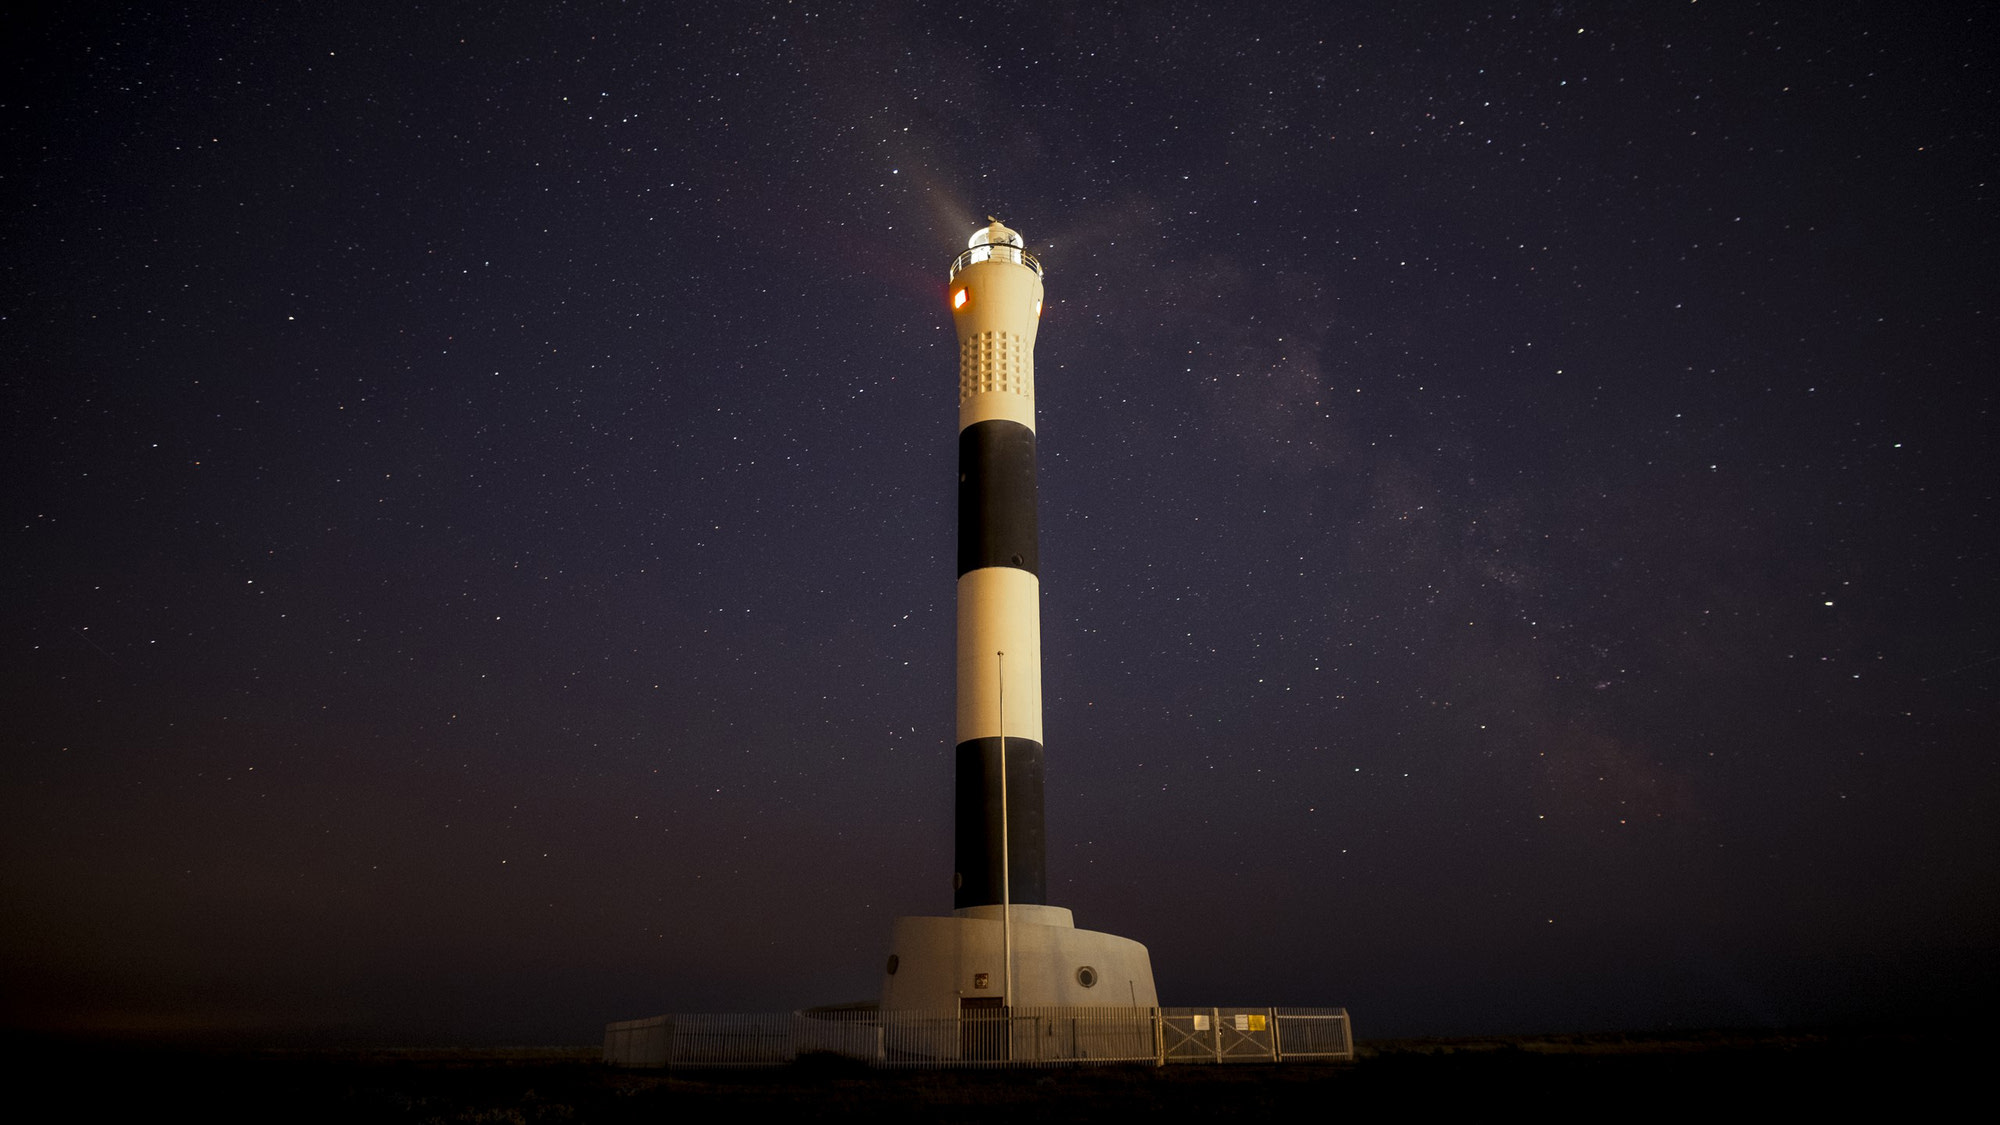 Dungeness Lighthouse at Night Full of Stars – A lighthuse against a stary night sky.